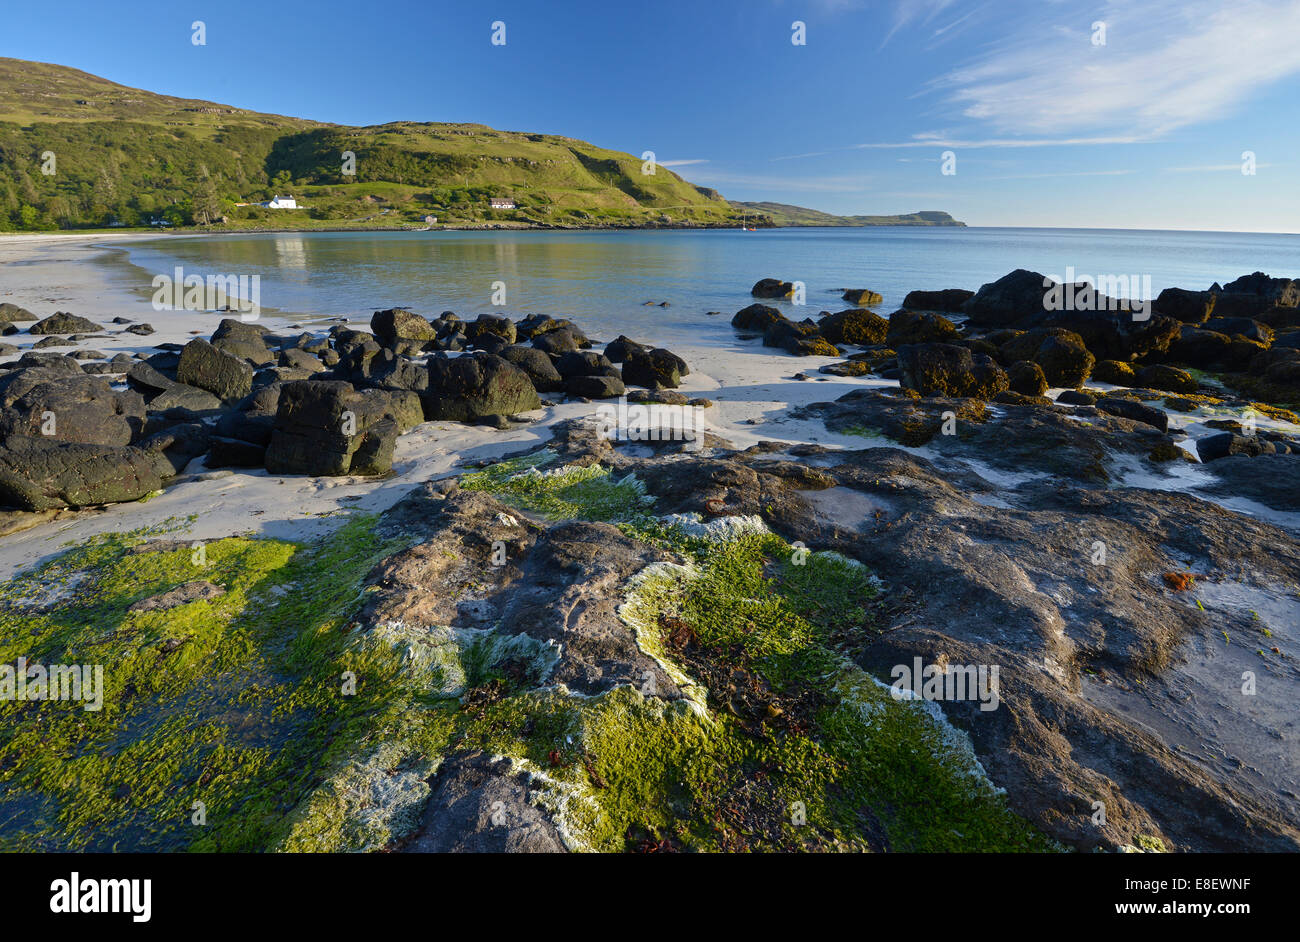 Beach of Calgary Bay, Isle of Mull, Inner Hebrides, Argyll and Bute, Scotland, United Kingdom - Stock Image